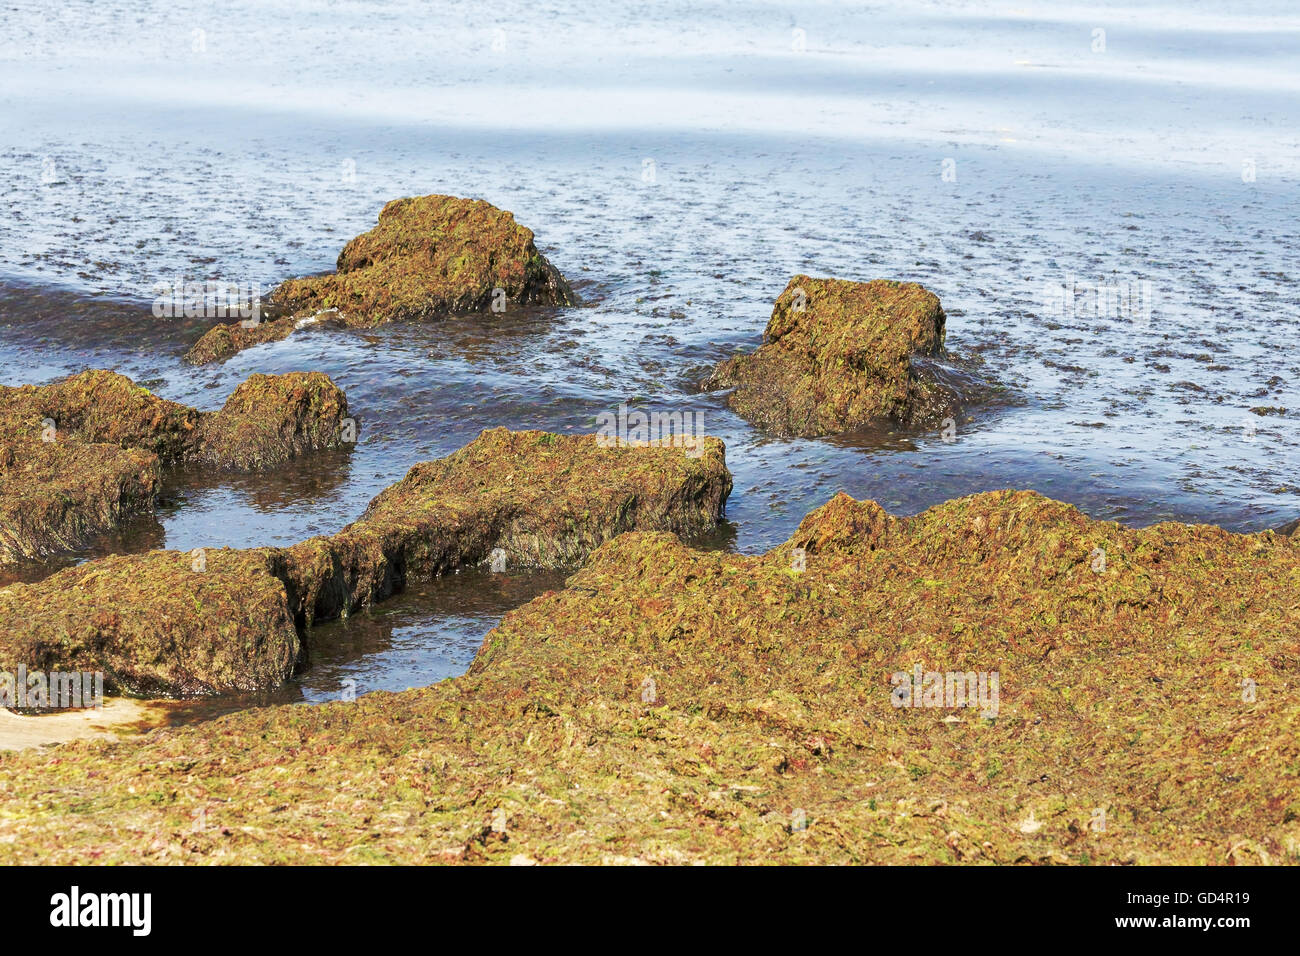 Amazing landscape formed by a seaweeds - Stock Image